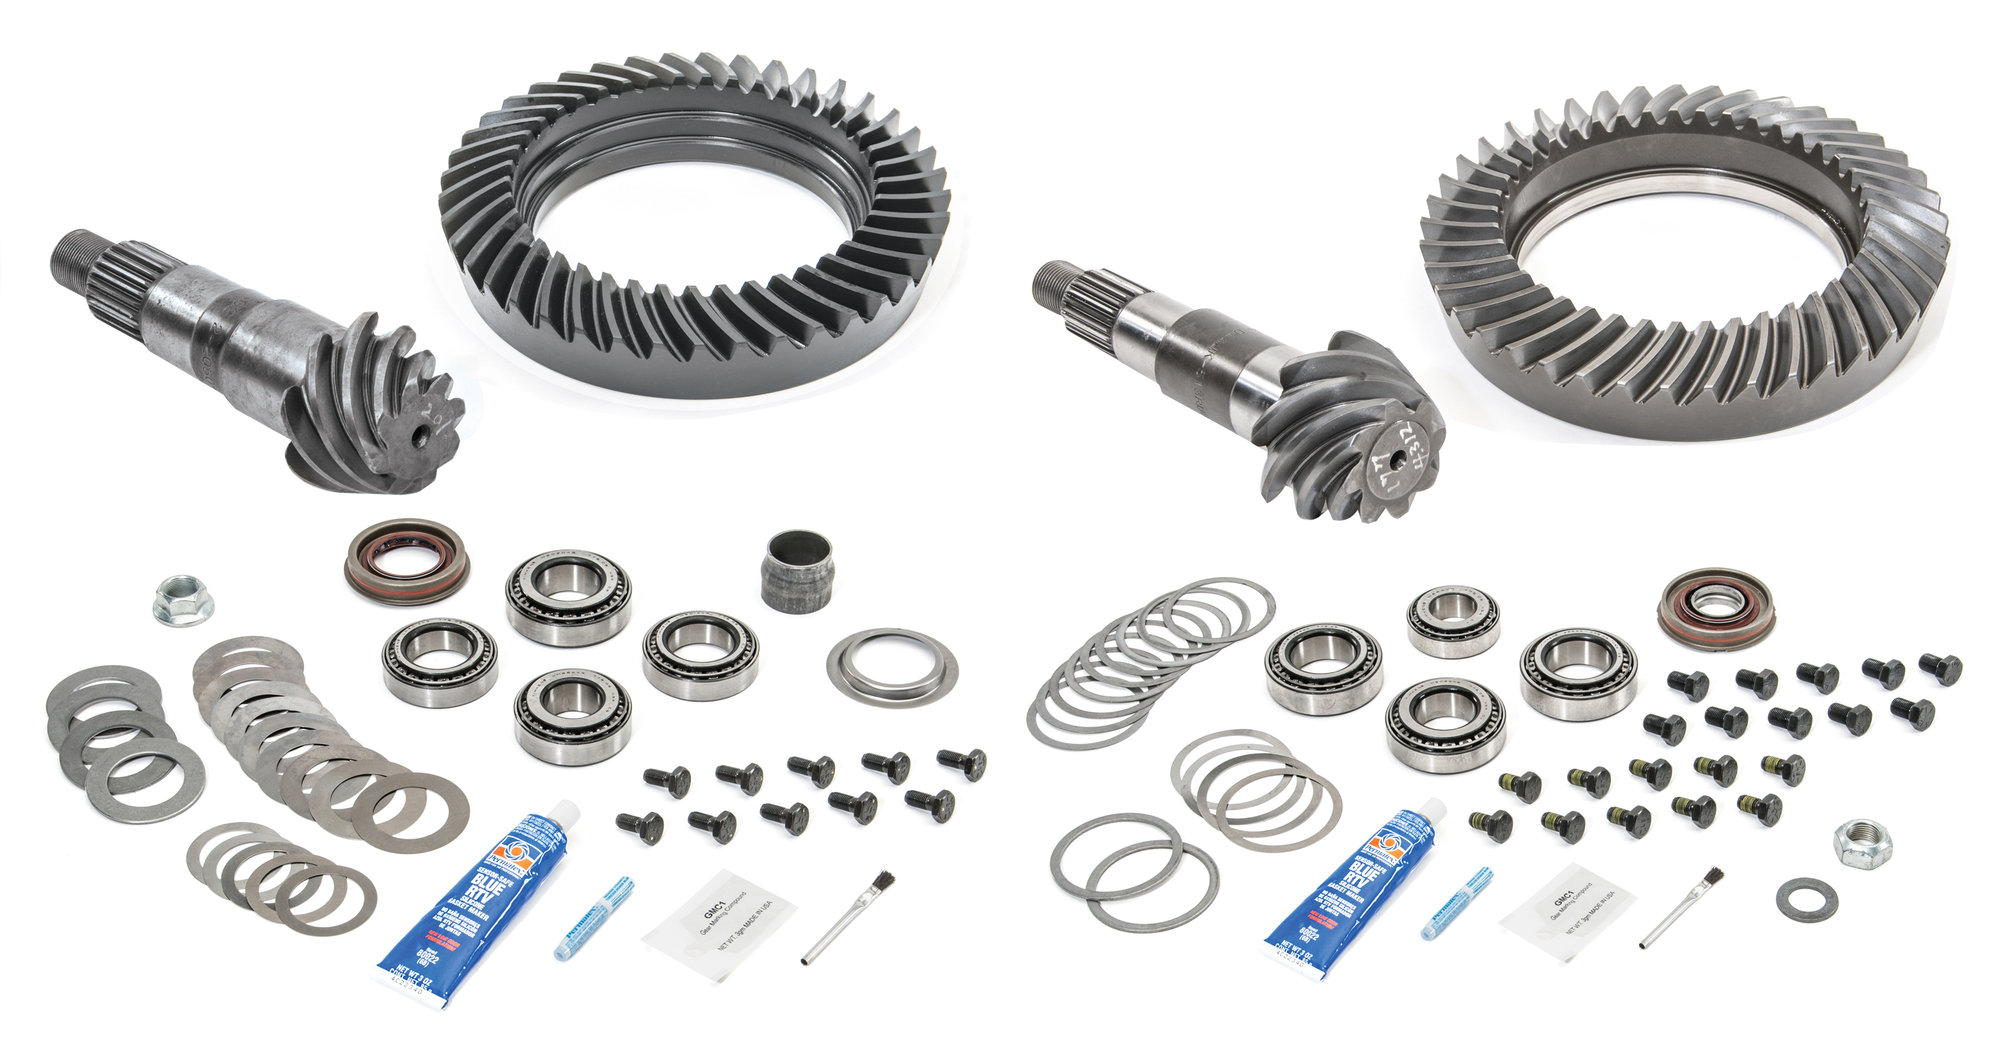 G2 Axle Amp Gear Front And Rear Ring And Pinion With Master